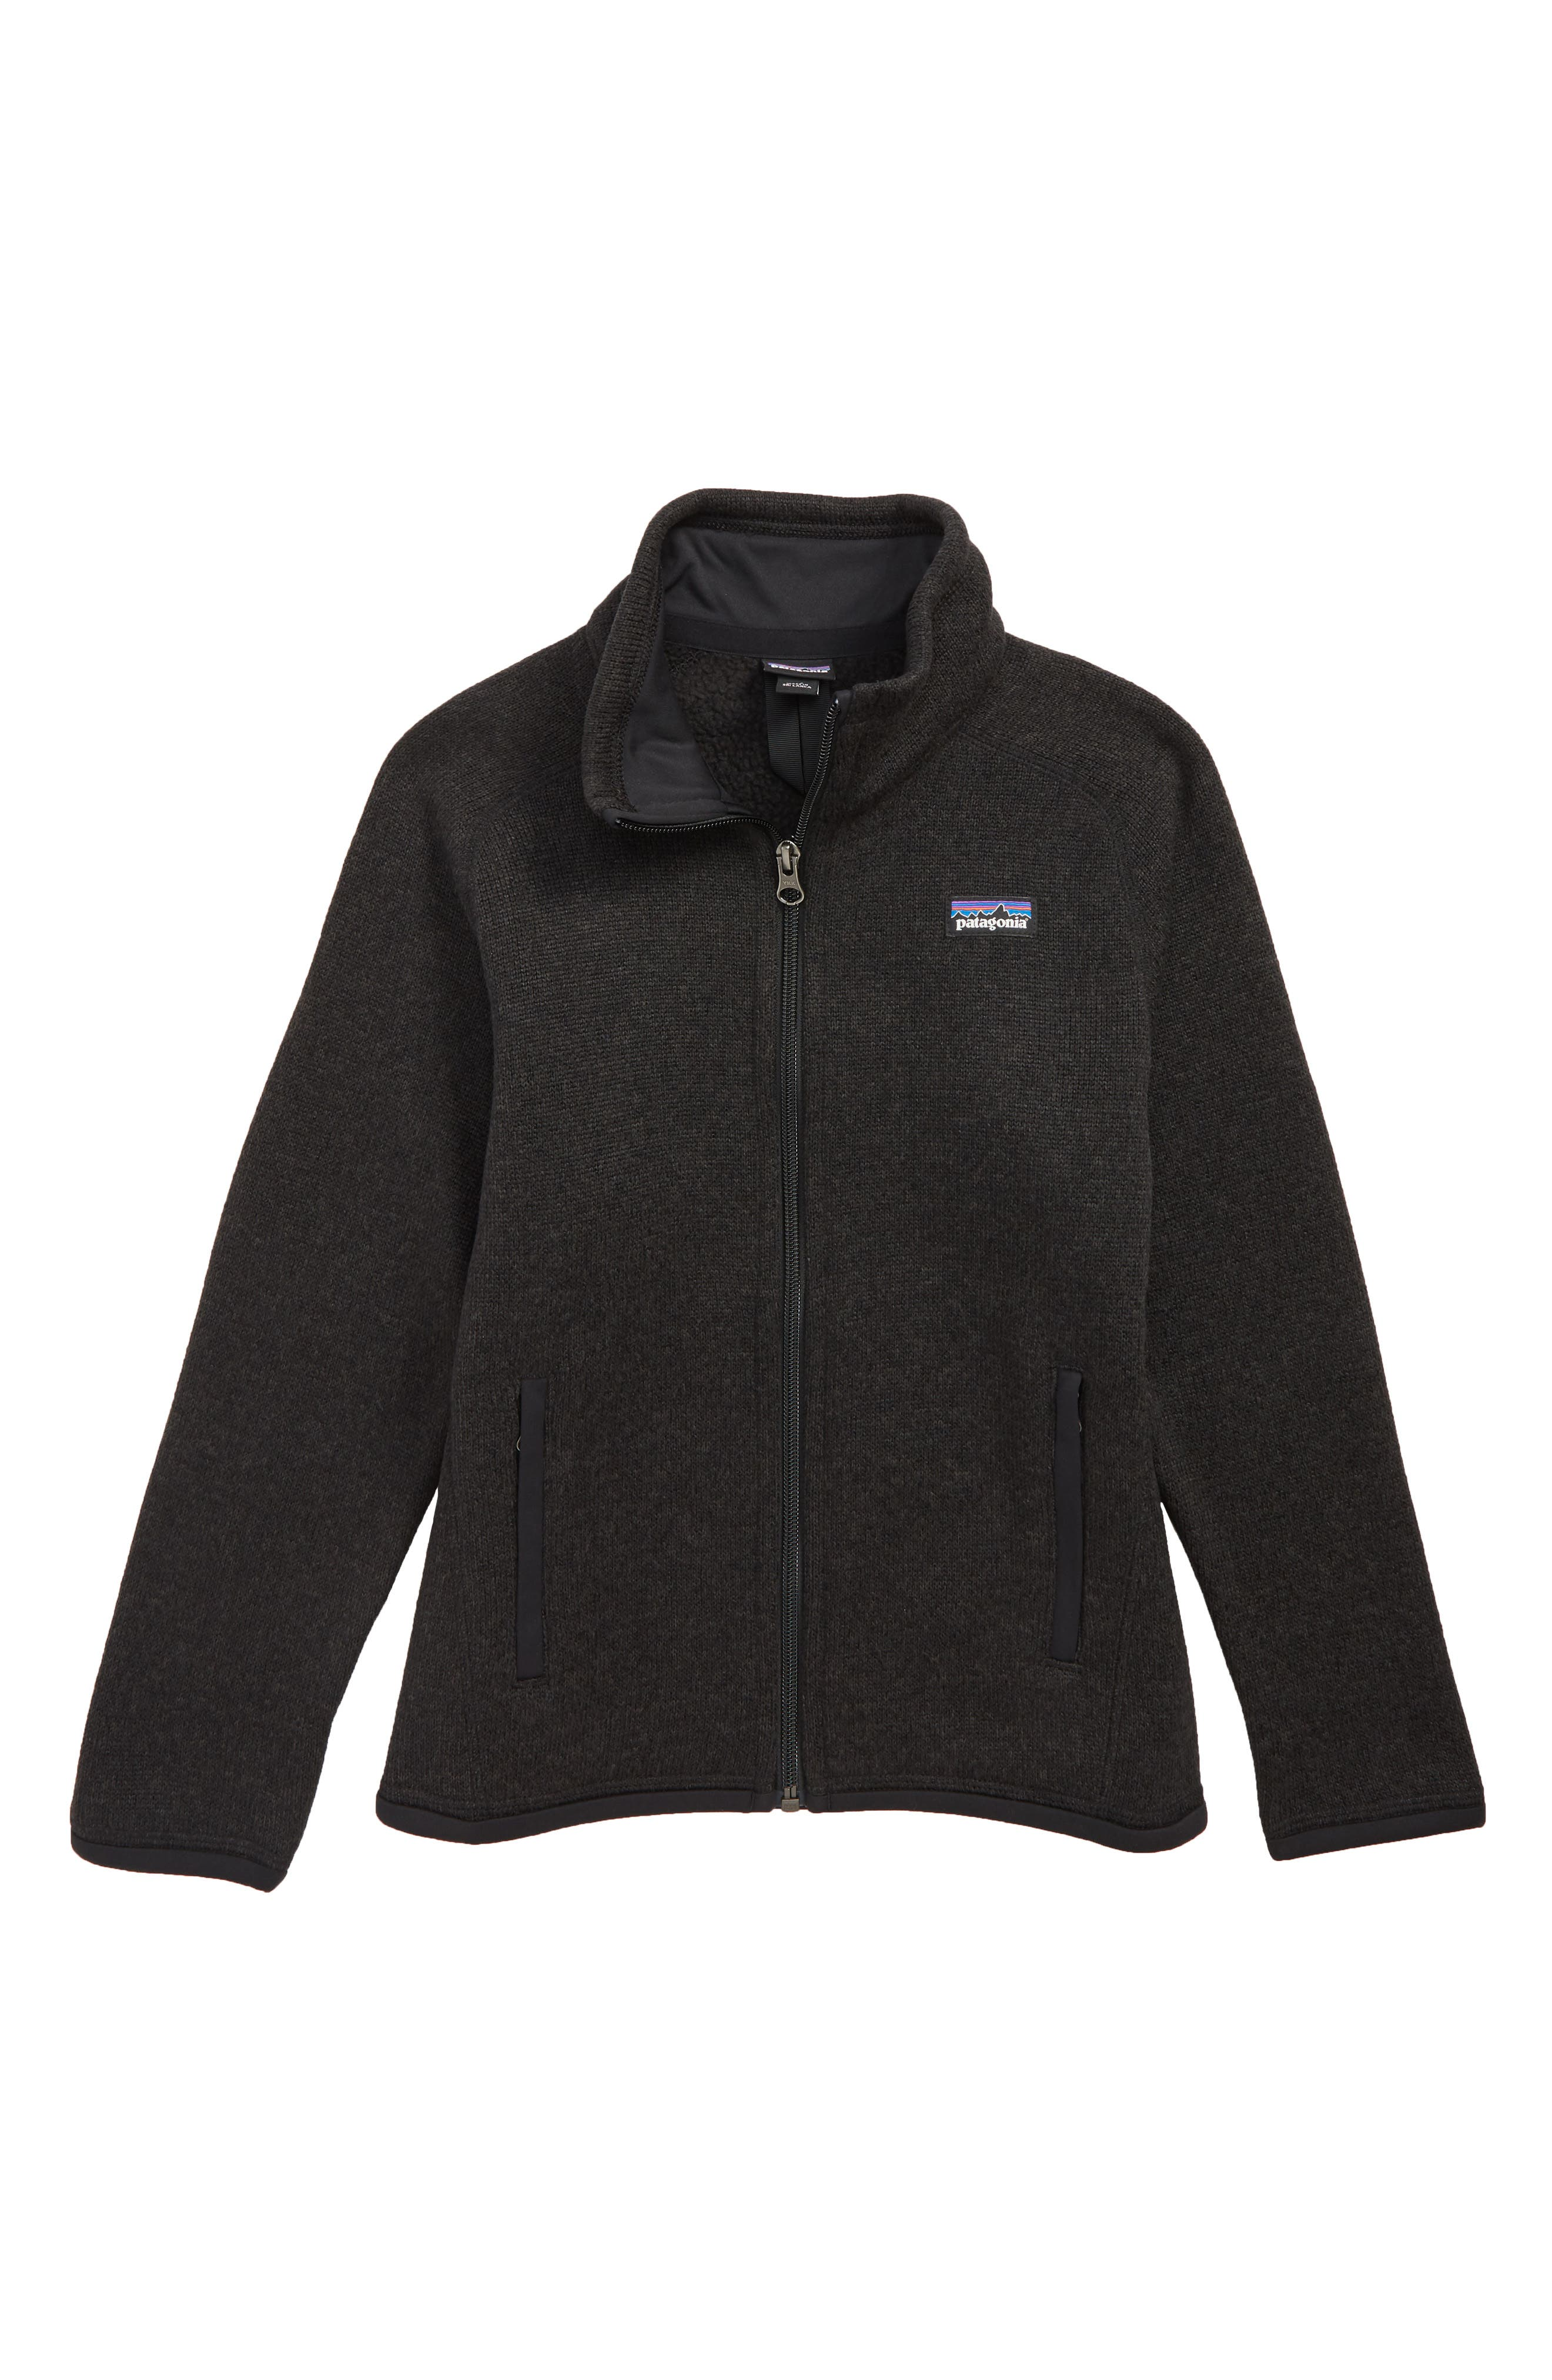 Better Sweater<sup>®</sup> Jacket,                         Main,                         color, BLACK